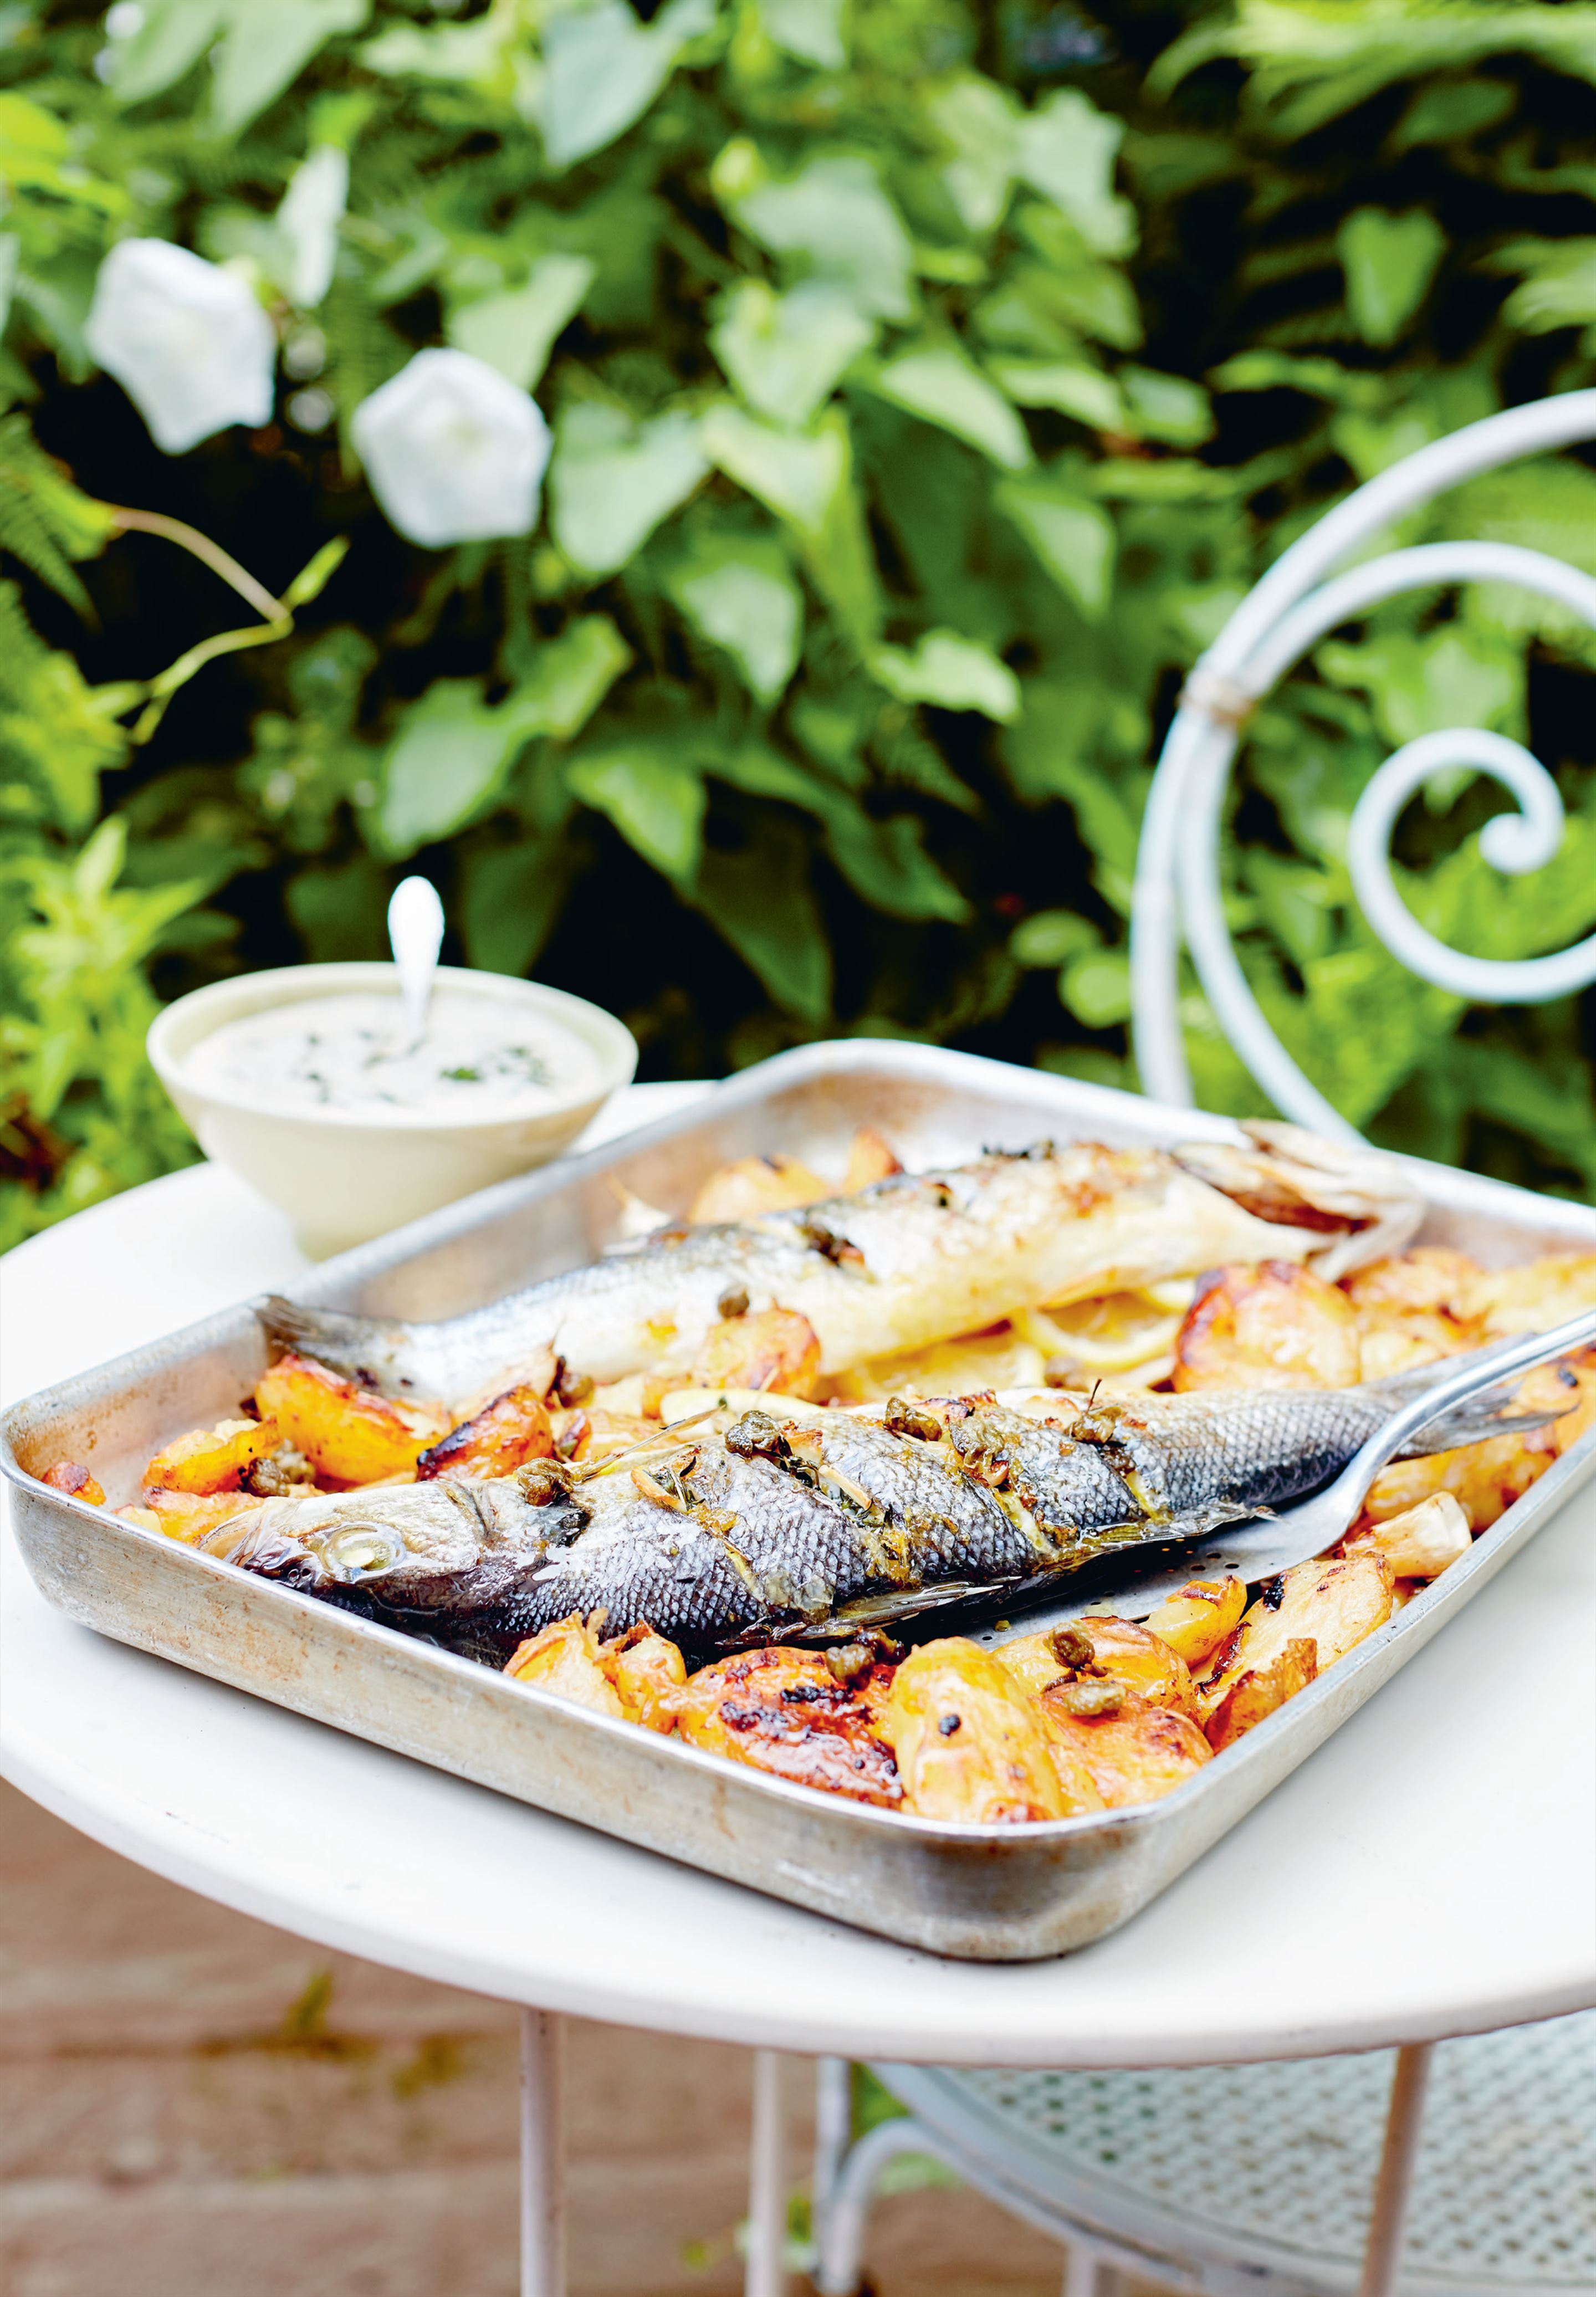 Whole baked fish with lemon and ouzo